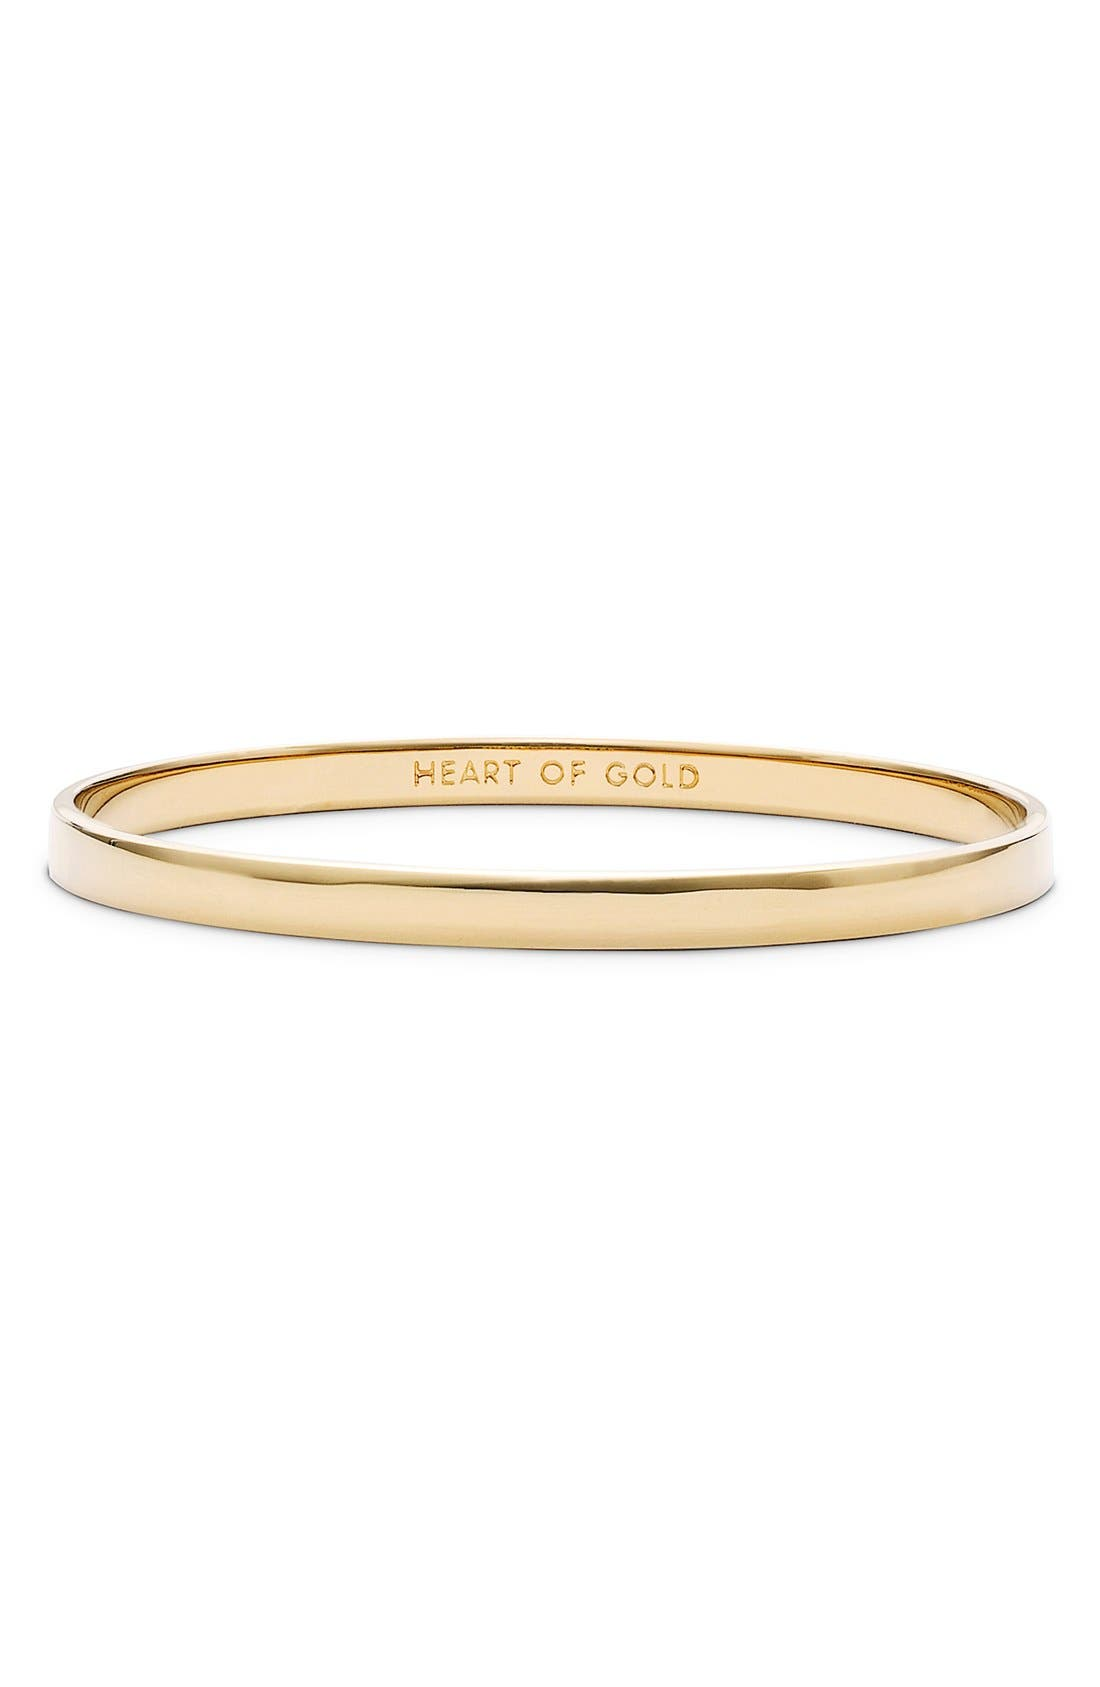 kate spade new york 'idiom - heart of gold' bangle